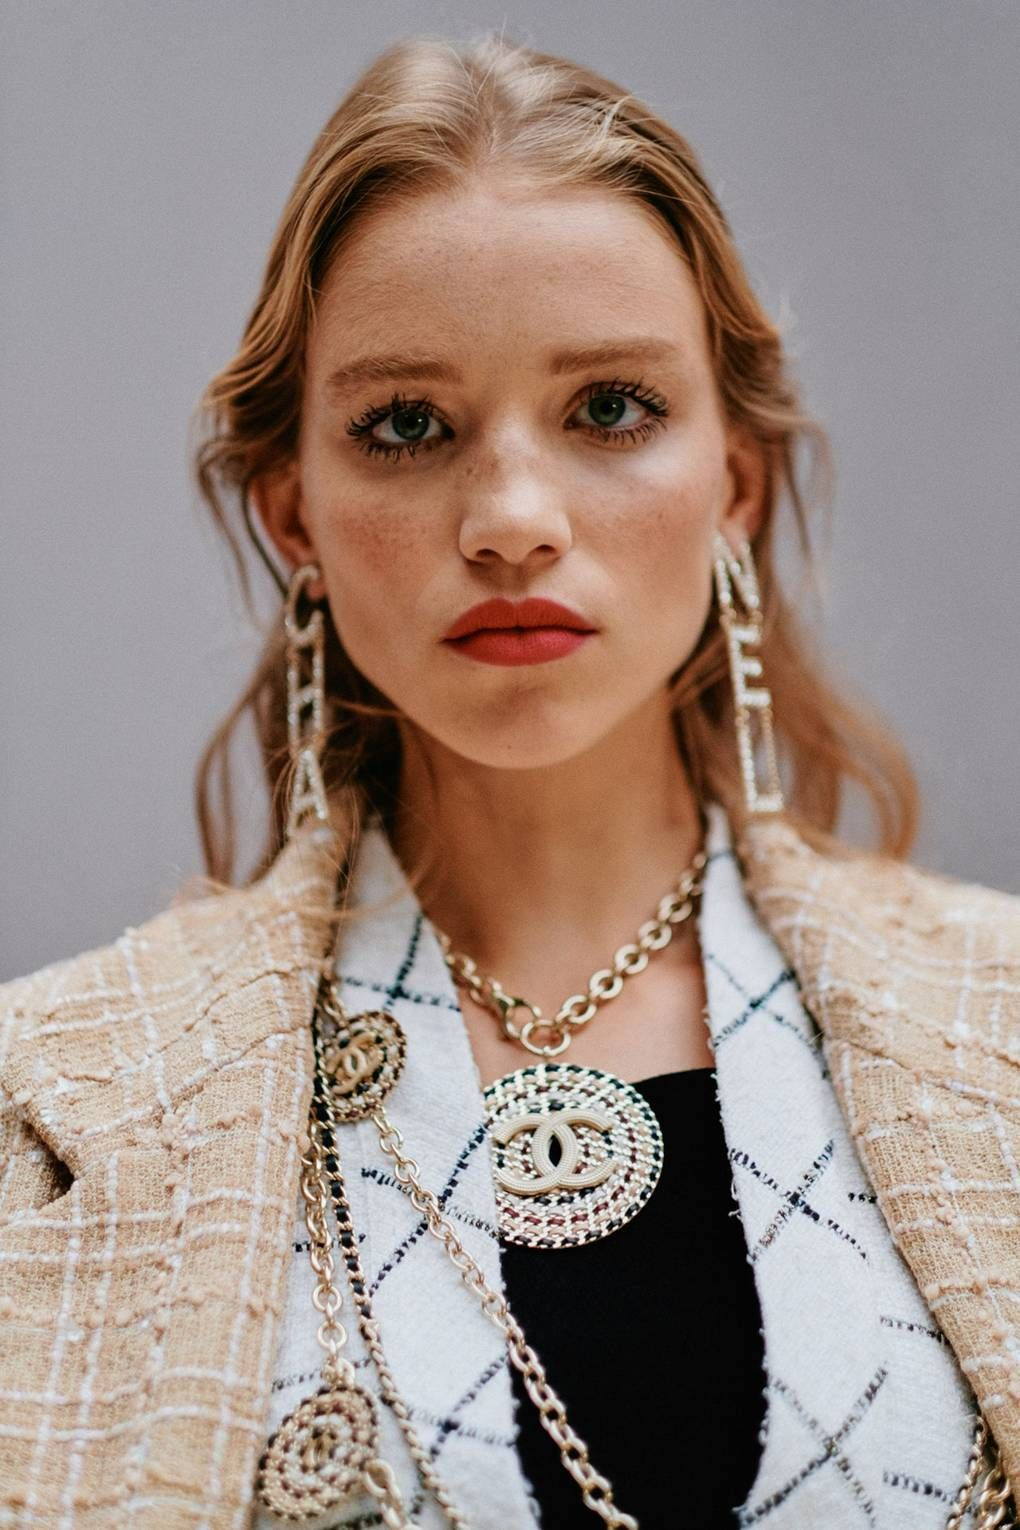 8d34df96963d Lucia Pica created the beauty look at Chanel, which incorporated bright  lips and spiky lashes.